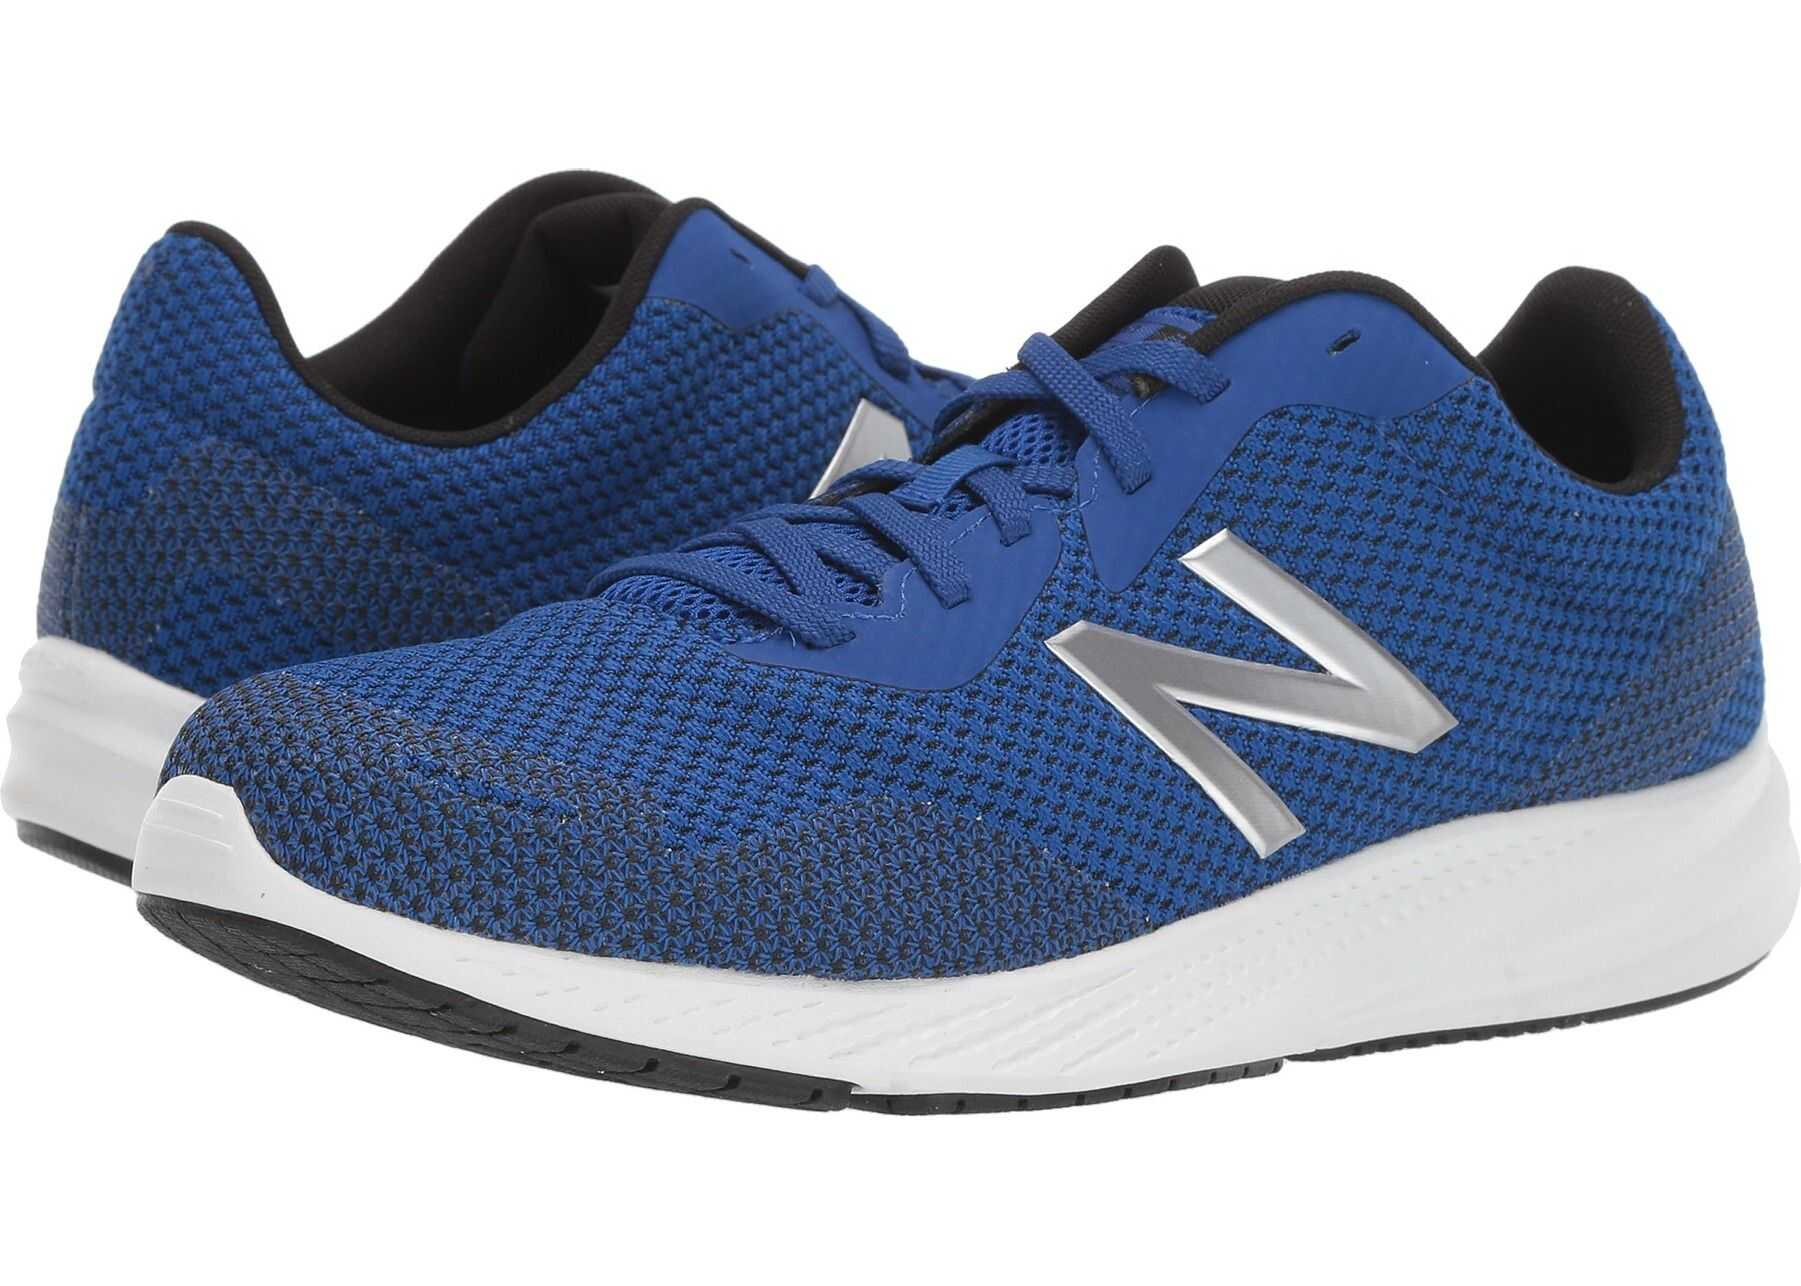 New Balance 490v7 Team Royal/Pigment